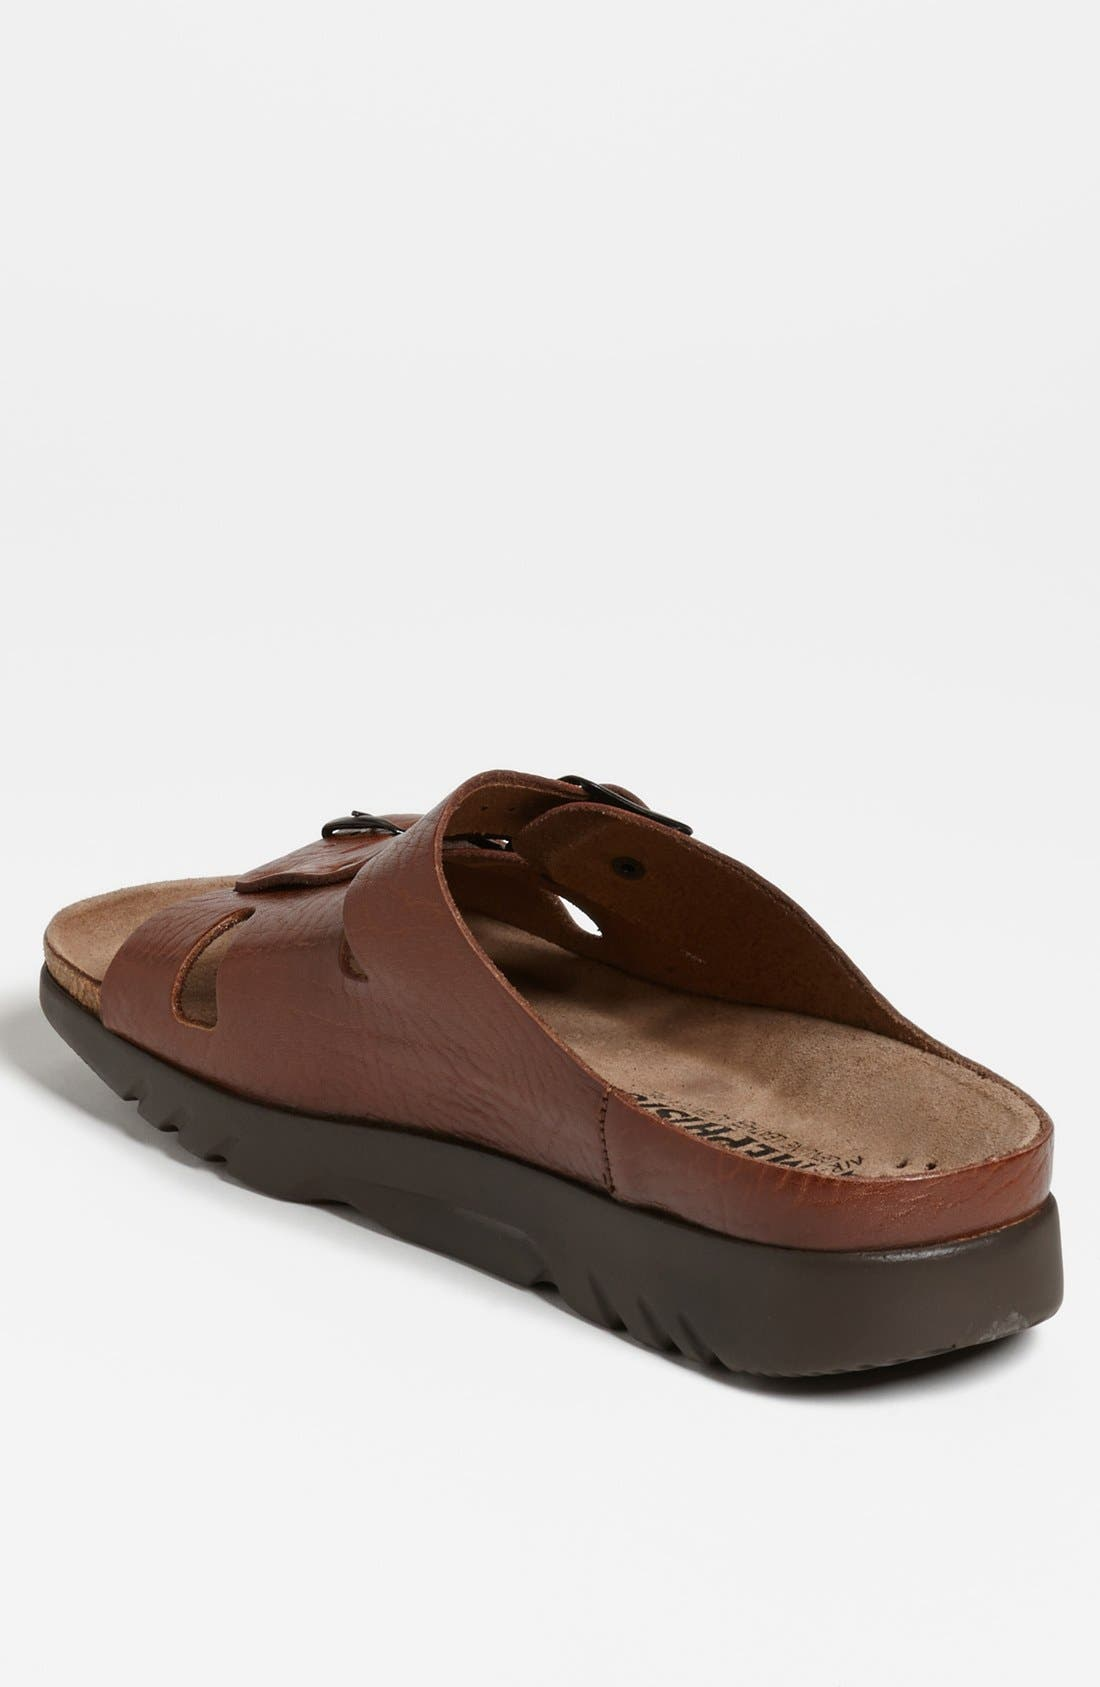 MEPHISTO, 'Zach 3' Sandal, Alternate thumbnail 2, color, TAN GRAIN